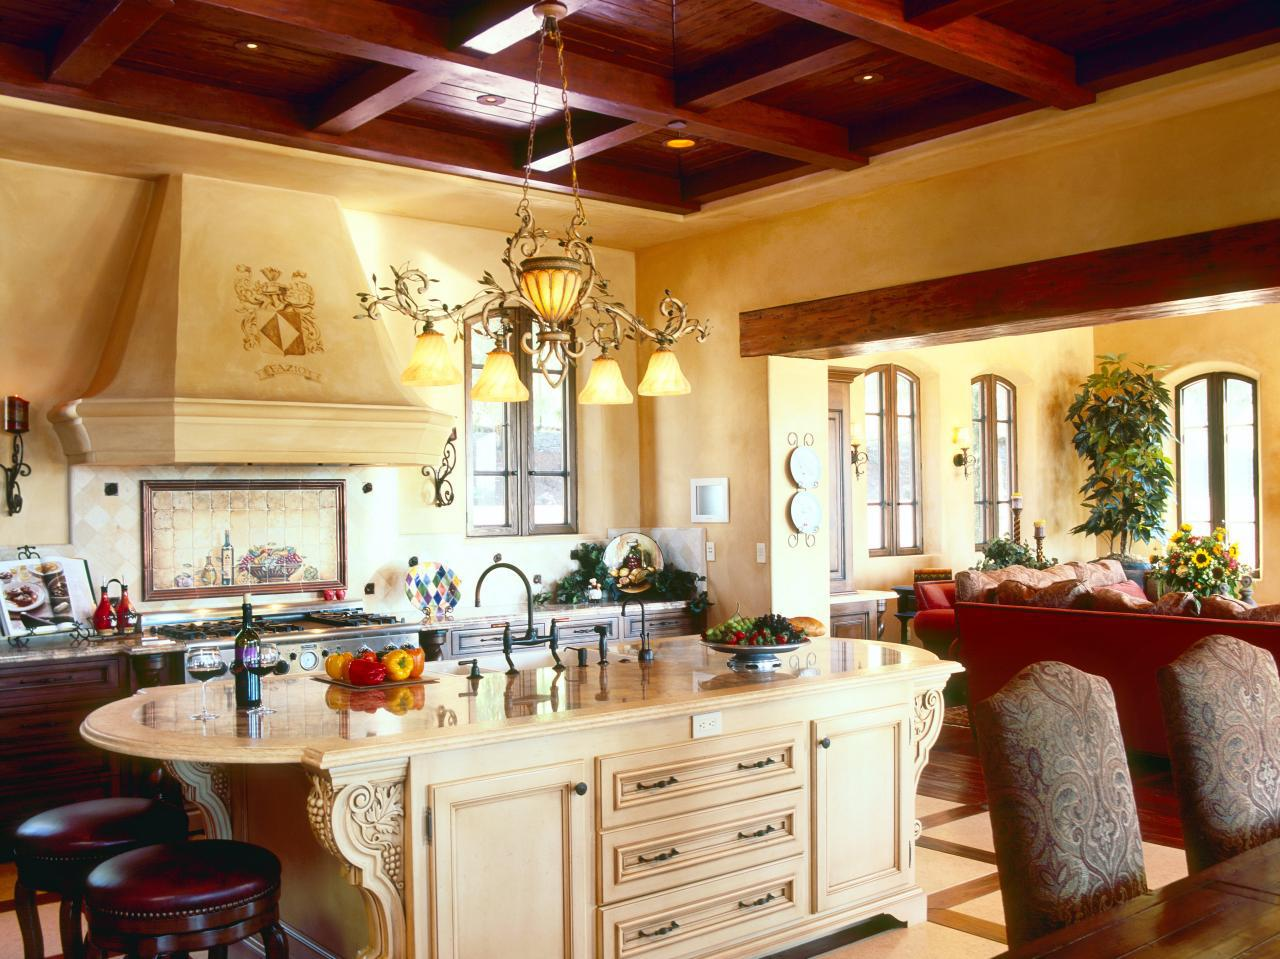 Image of: Tuscan Country Kitchen Design Ideas